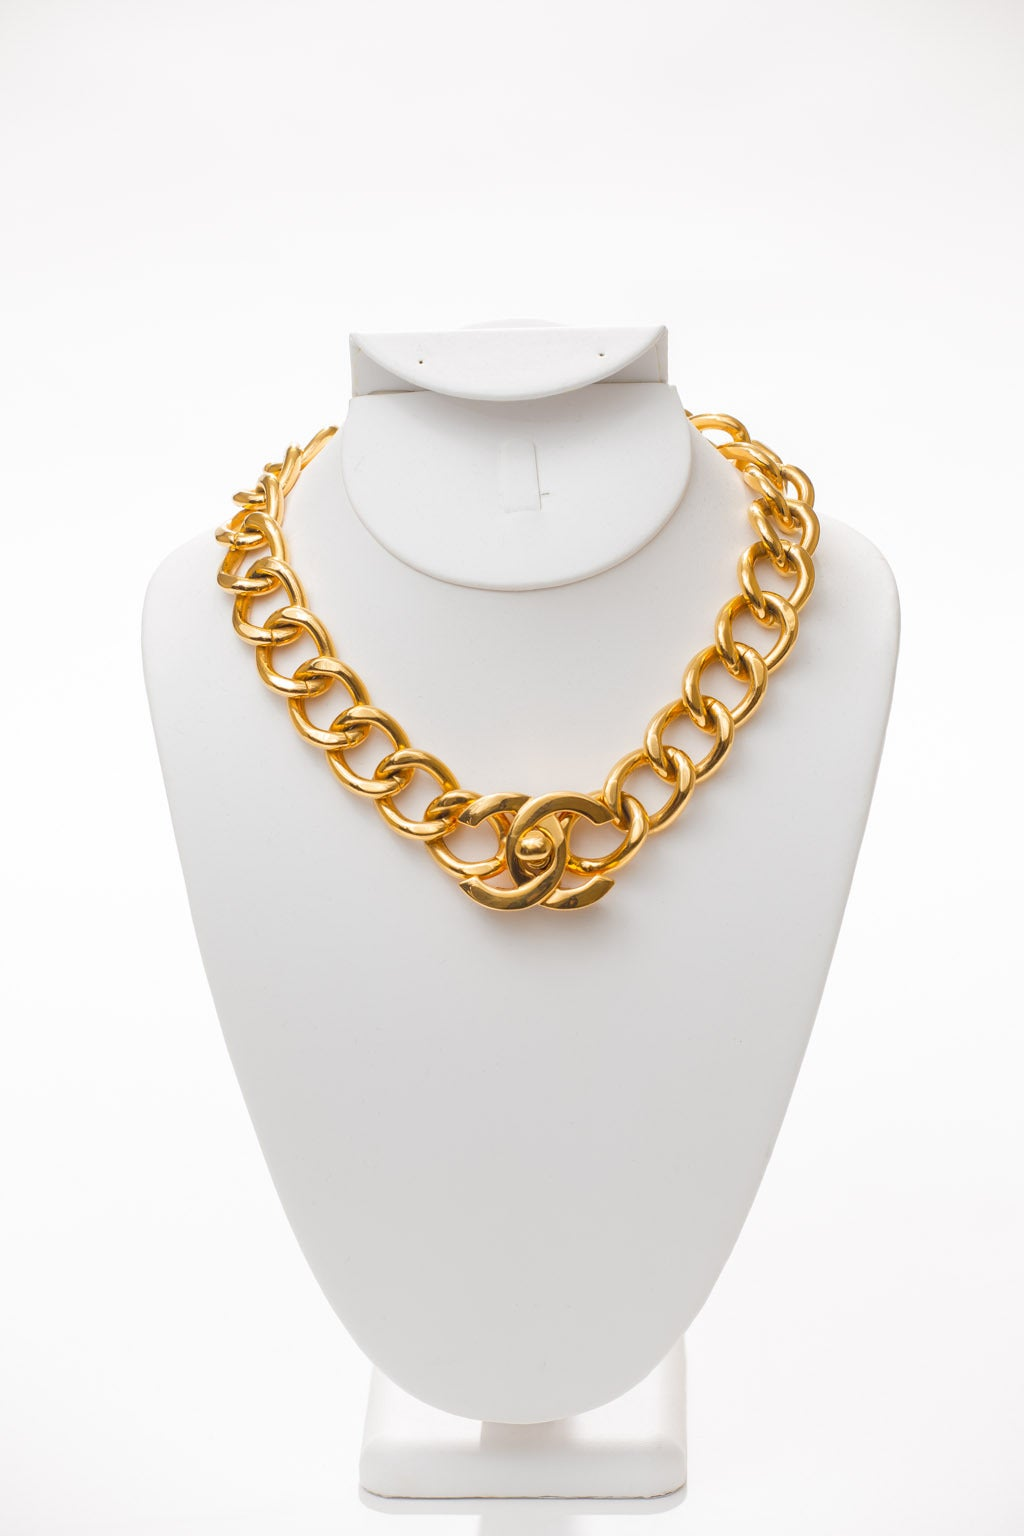 Chanel Choker Necklace 3